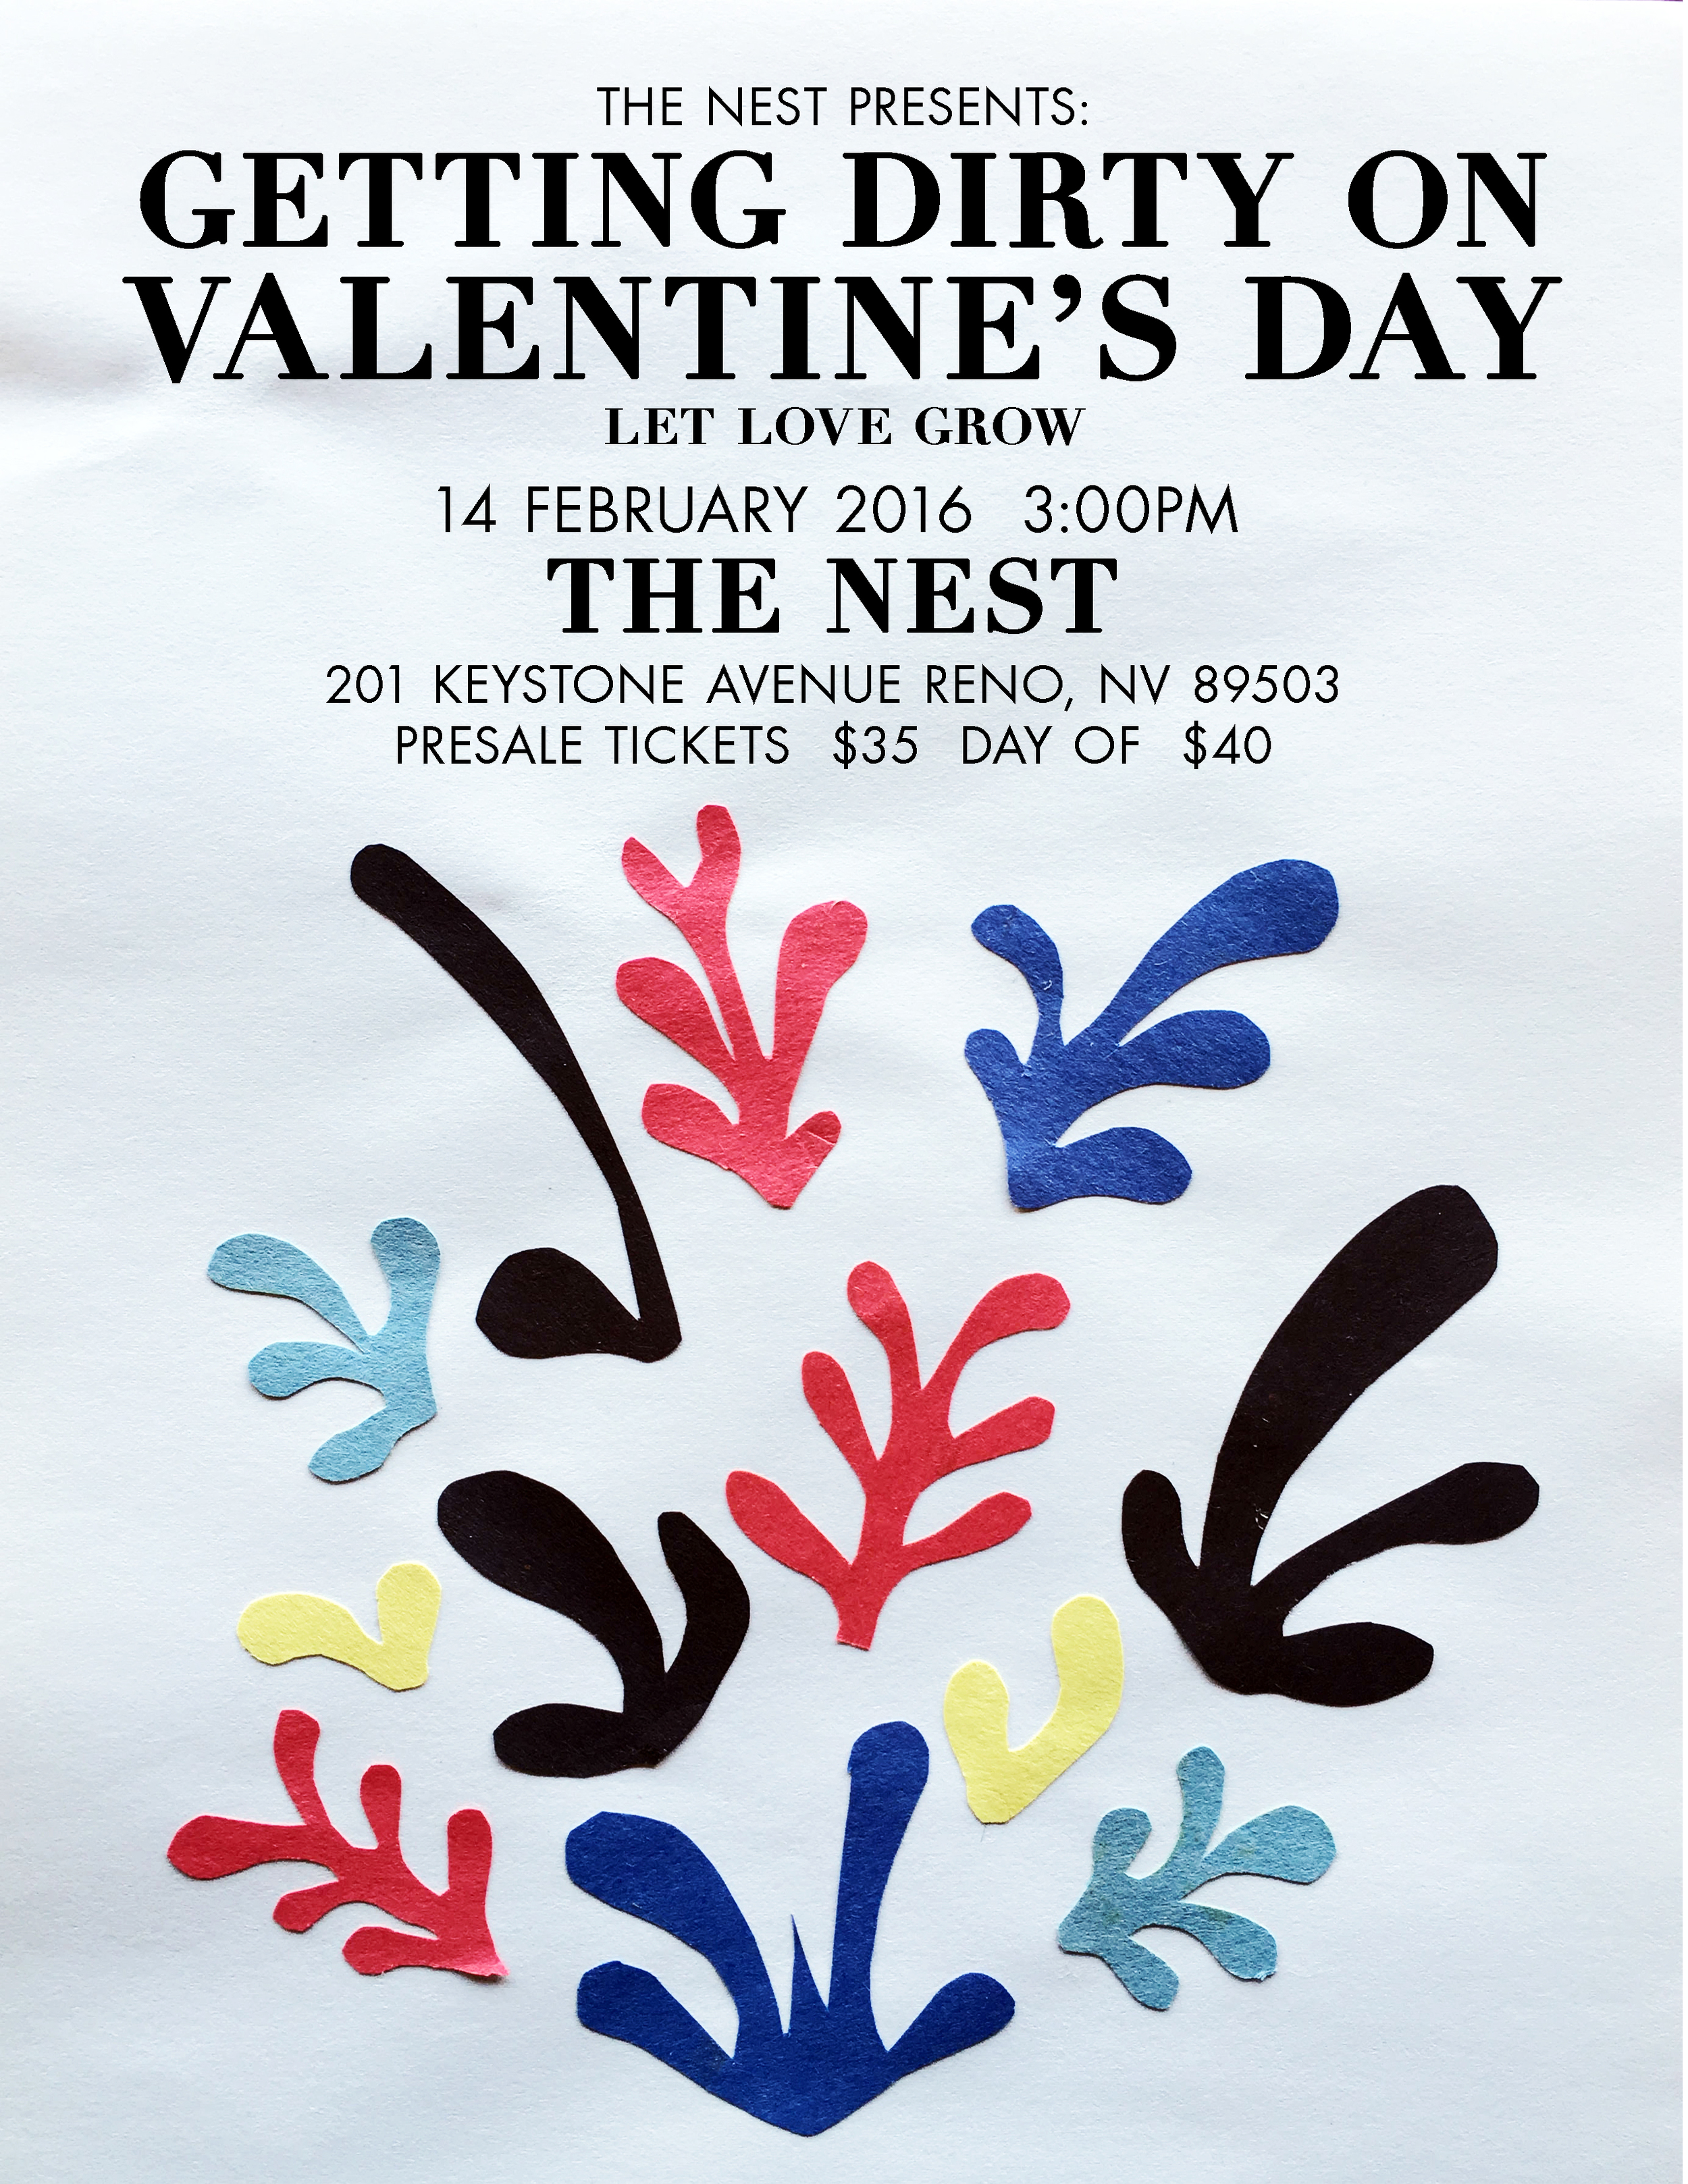 Valentine's Day Flyer Front